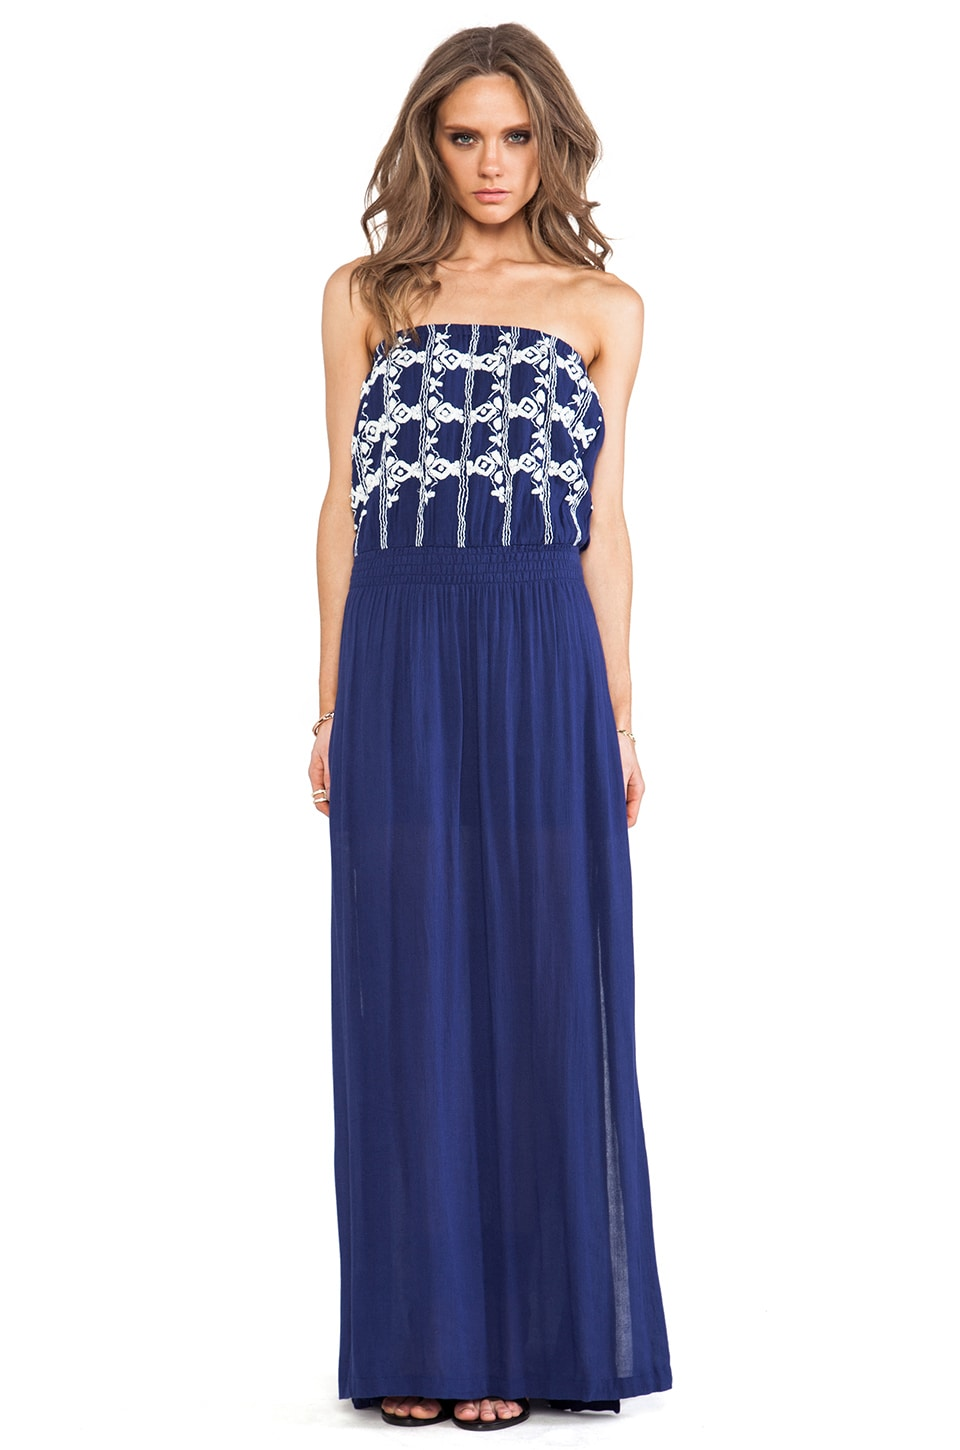 LA Made Strapless Maxi Dress in Navy